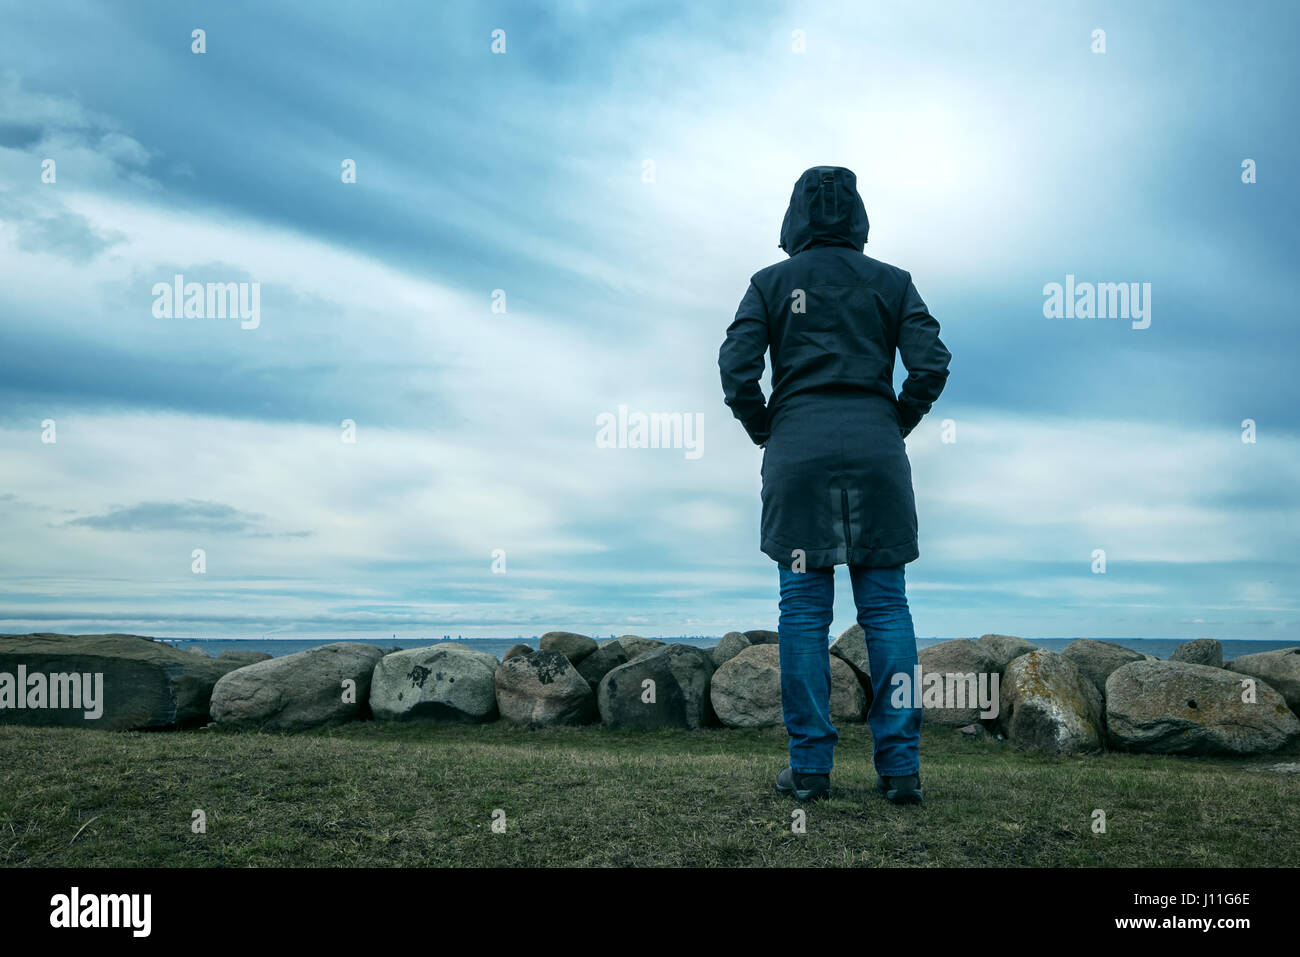 Lonely hooded female person from behind standing at seashore and looking into distance on a cold winter day, concept - Stock Image